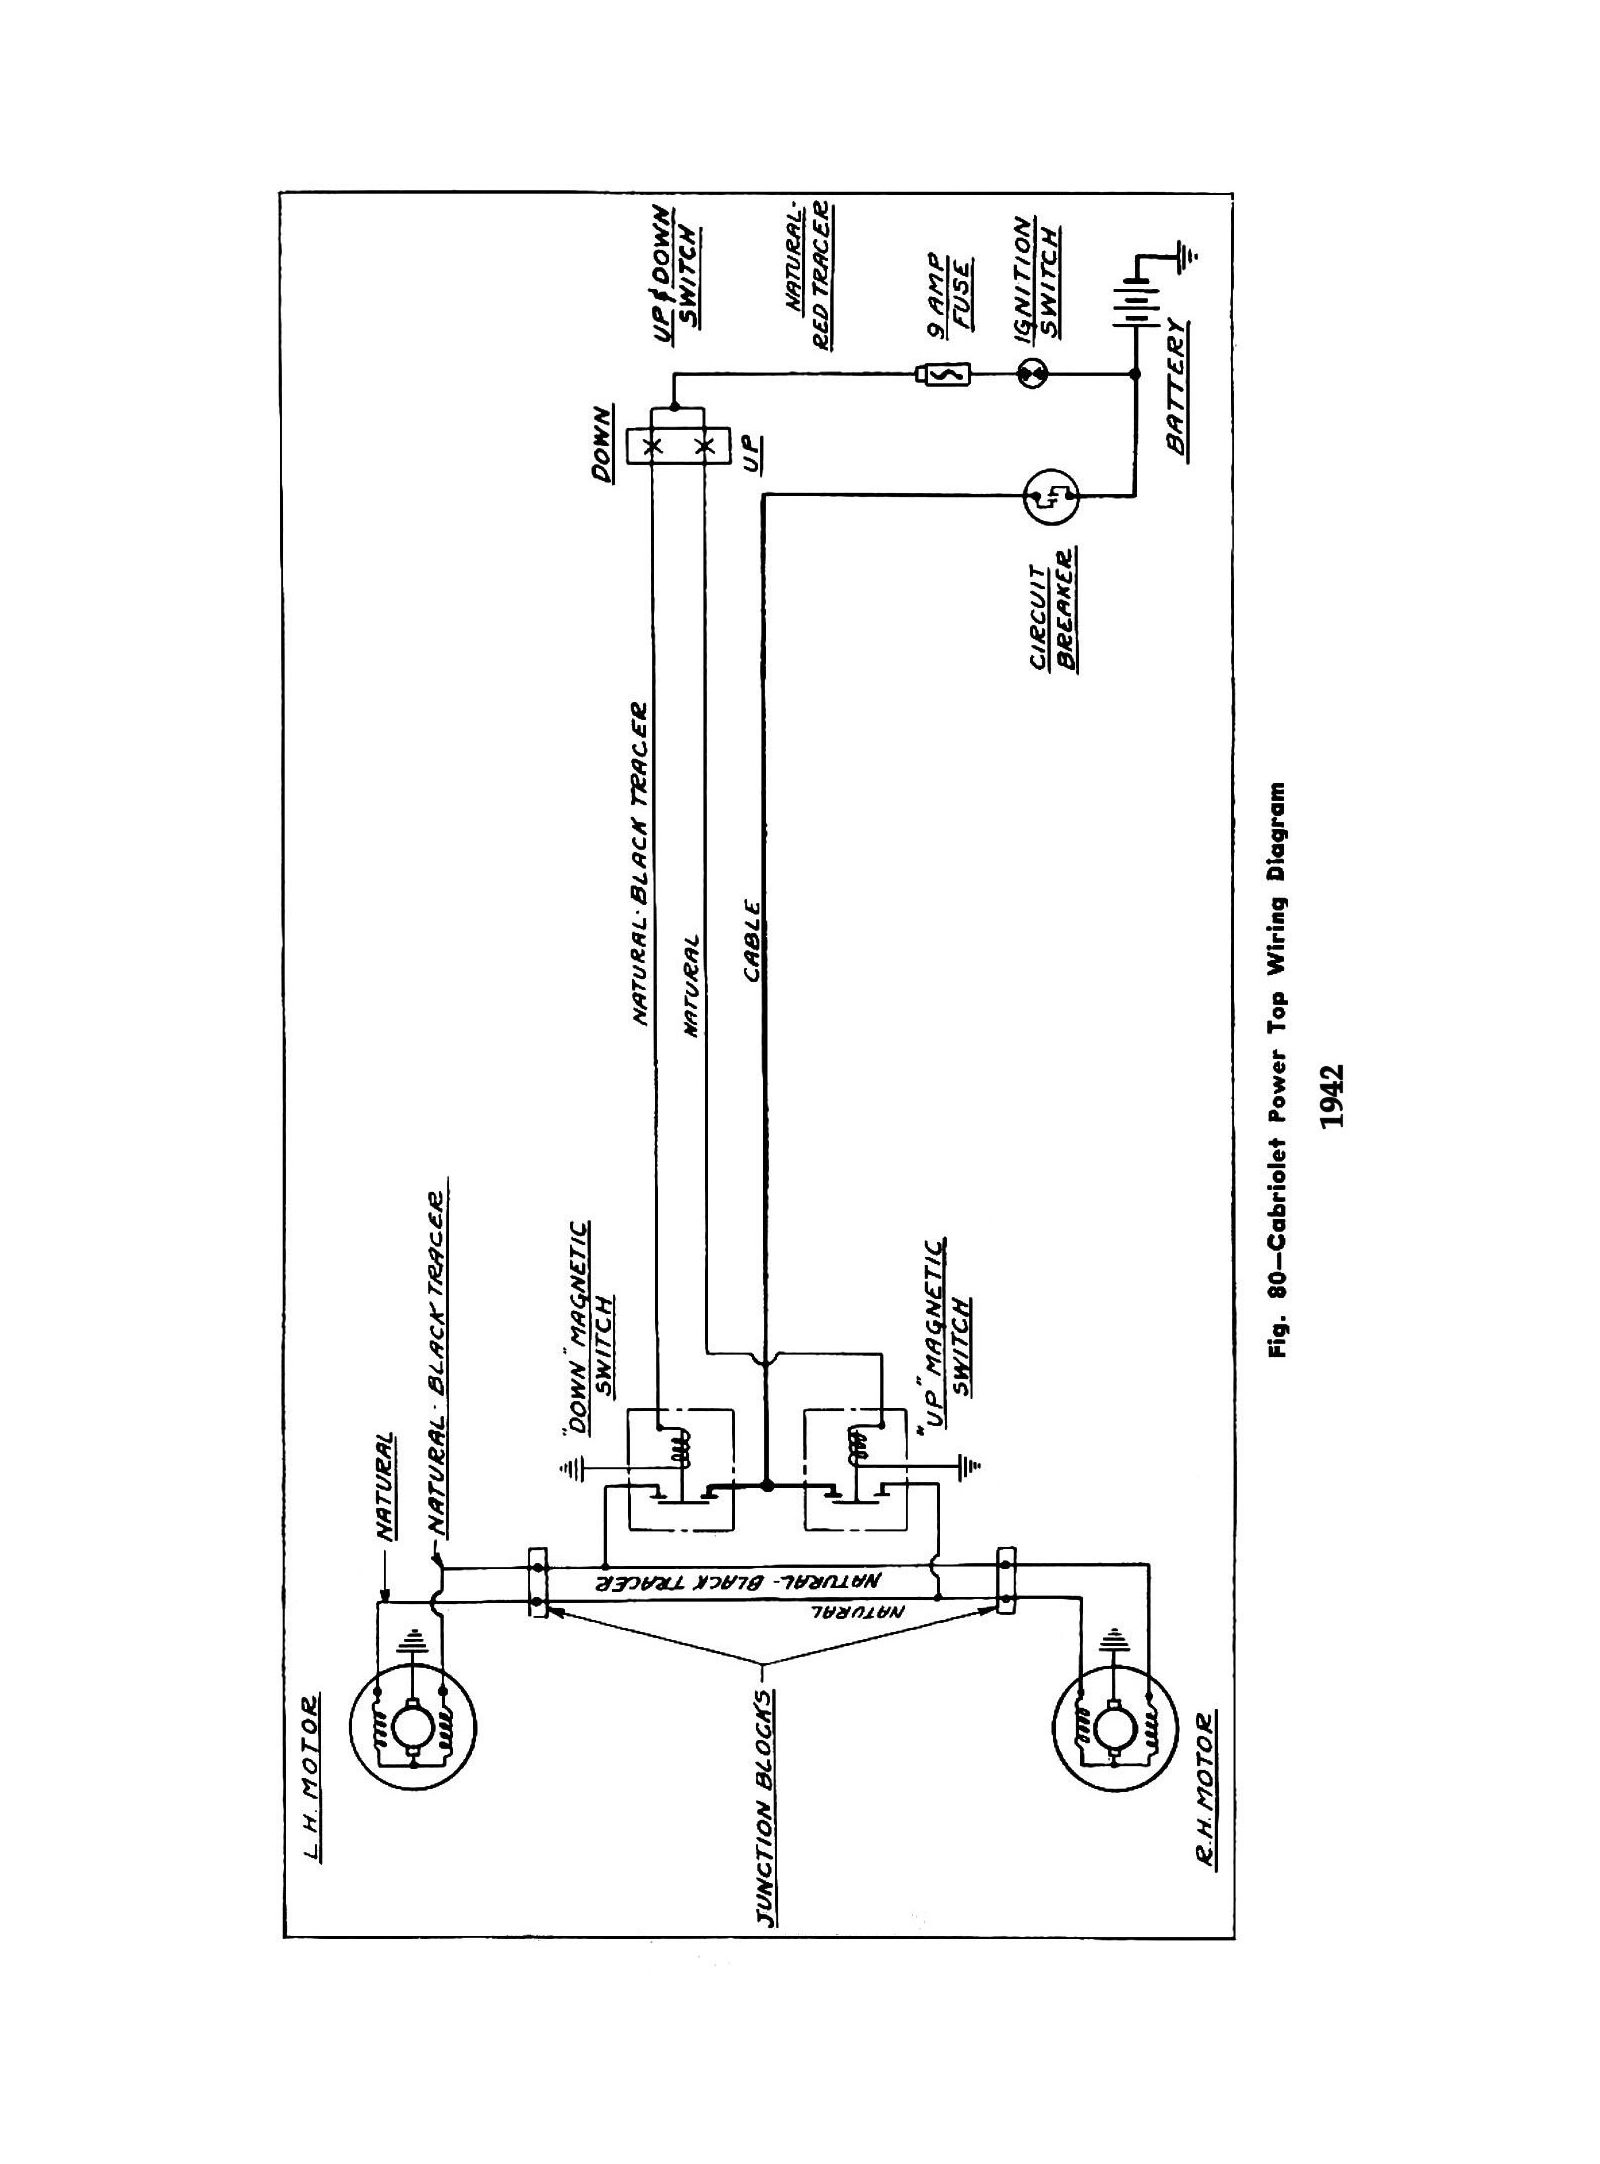 92 chevrolet s10 stereo wiring diagram